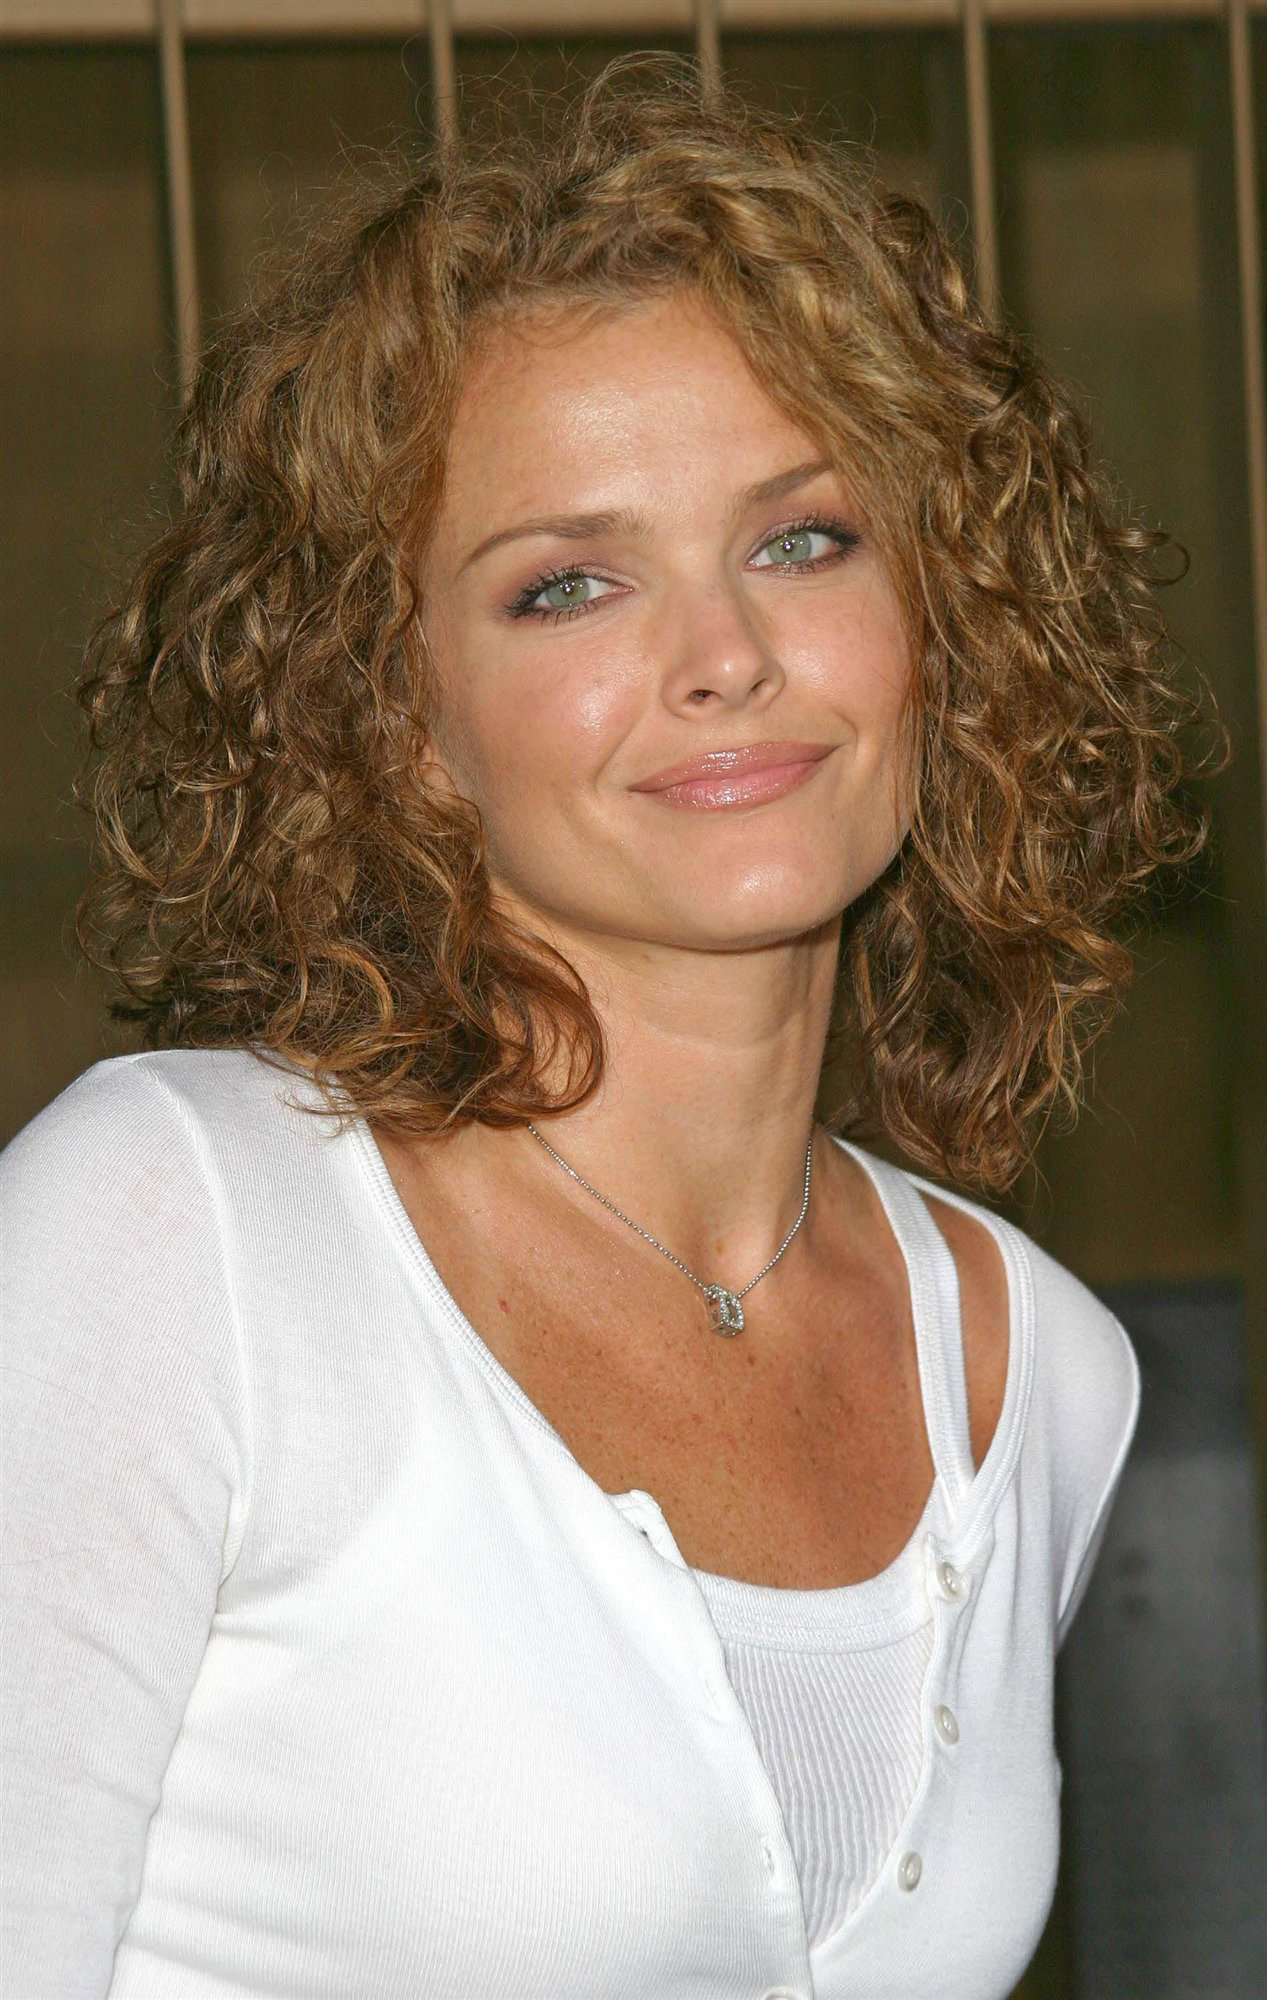 dina meyer imdbdina meyer 2017, dina meyer nationality, dina meyer barbara gordon, dina meyer who dated who, dina meyer, dina meyer married, dina meyer imdb, dina meyer husband, dina meyer wiki, dina meyer instagram, dina meyer 2015, dina meyer boyfriend, dina meyer twitter, dina meyer saw, dina meyer facebook, dina meyer photos